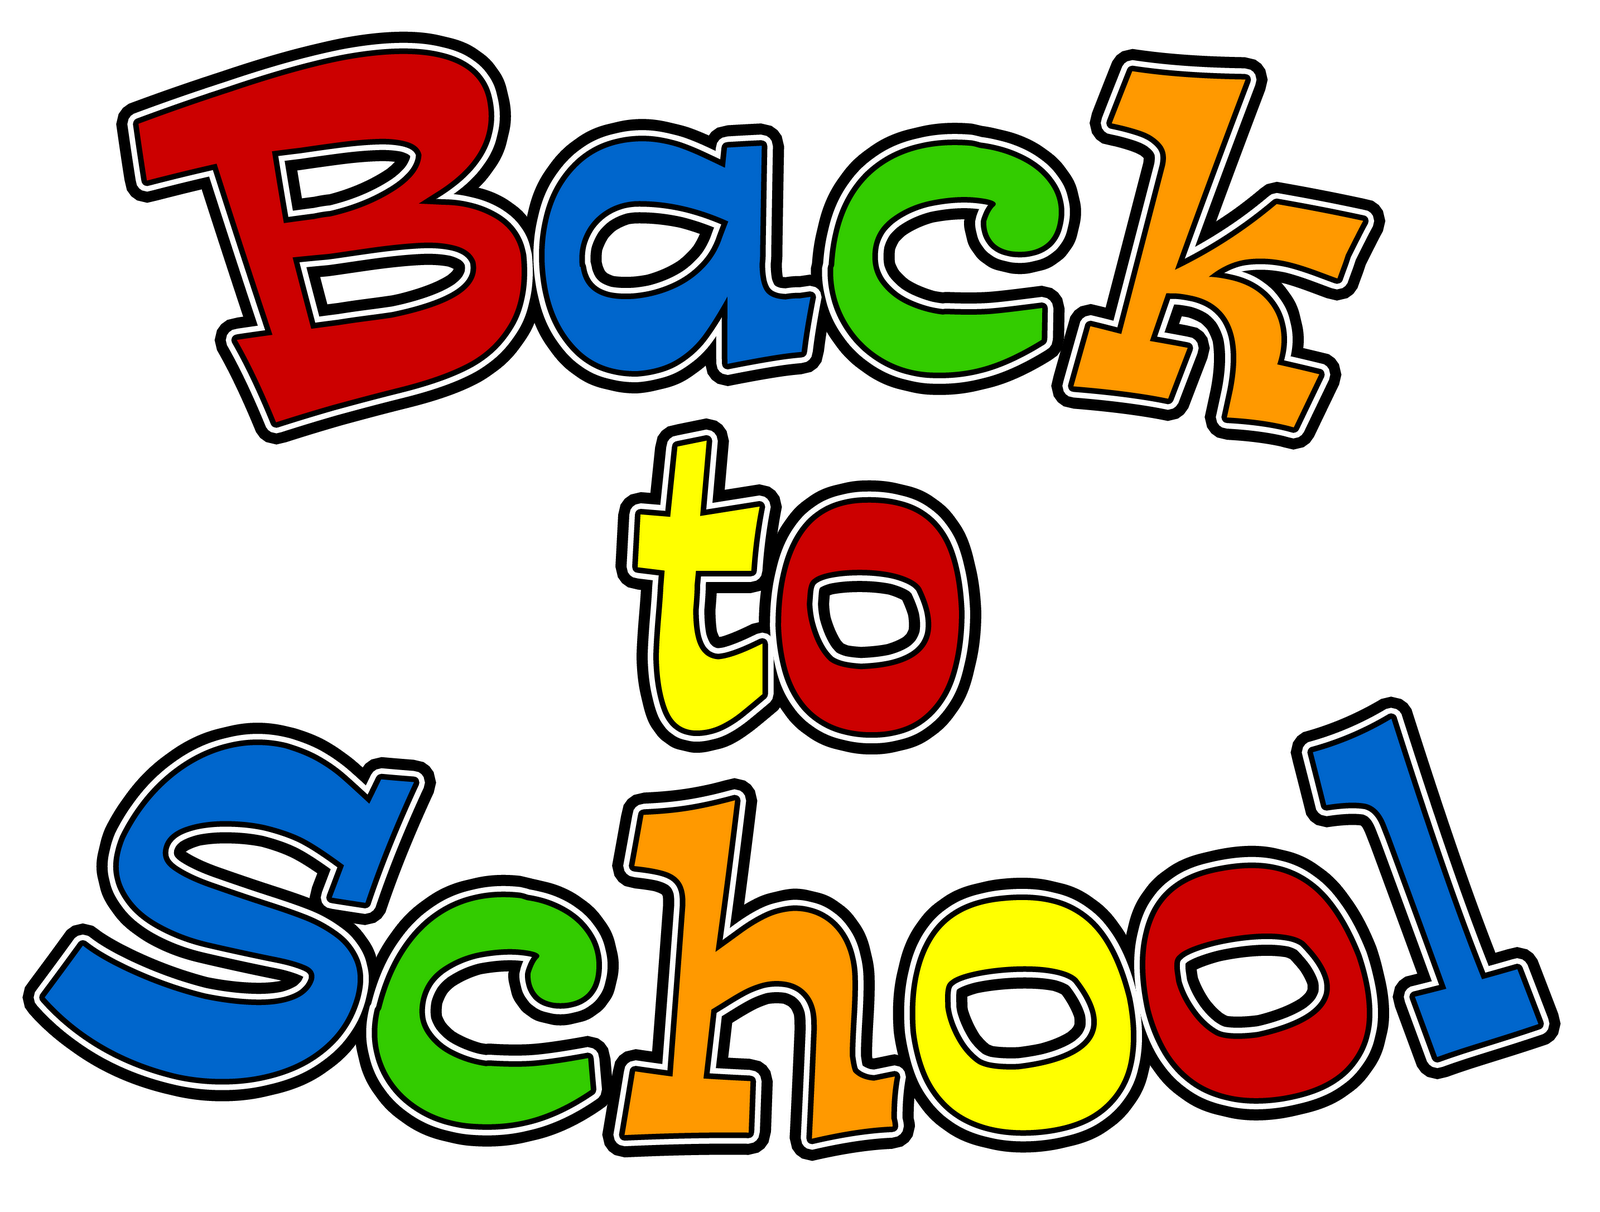 Clip Art First Day Of School Clip Art first day of school clipart free best back to images download clip art clip